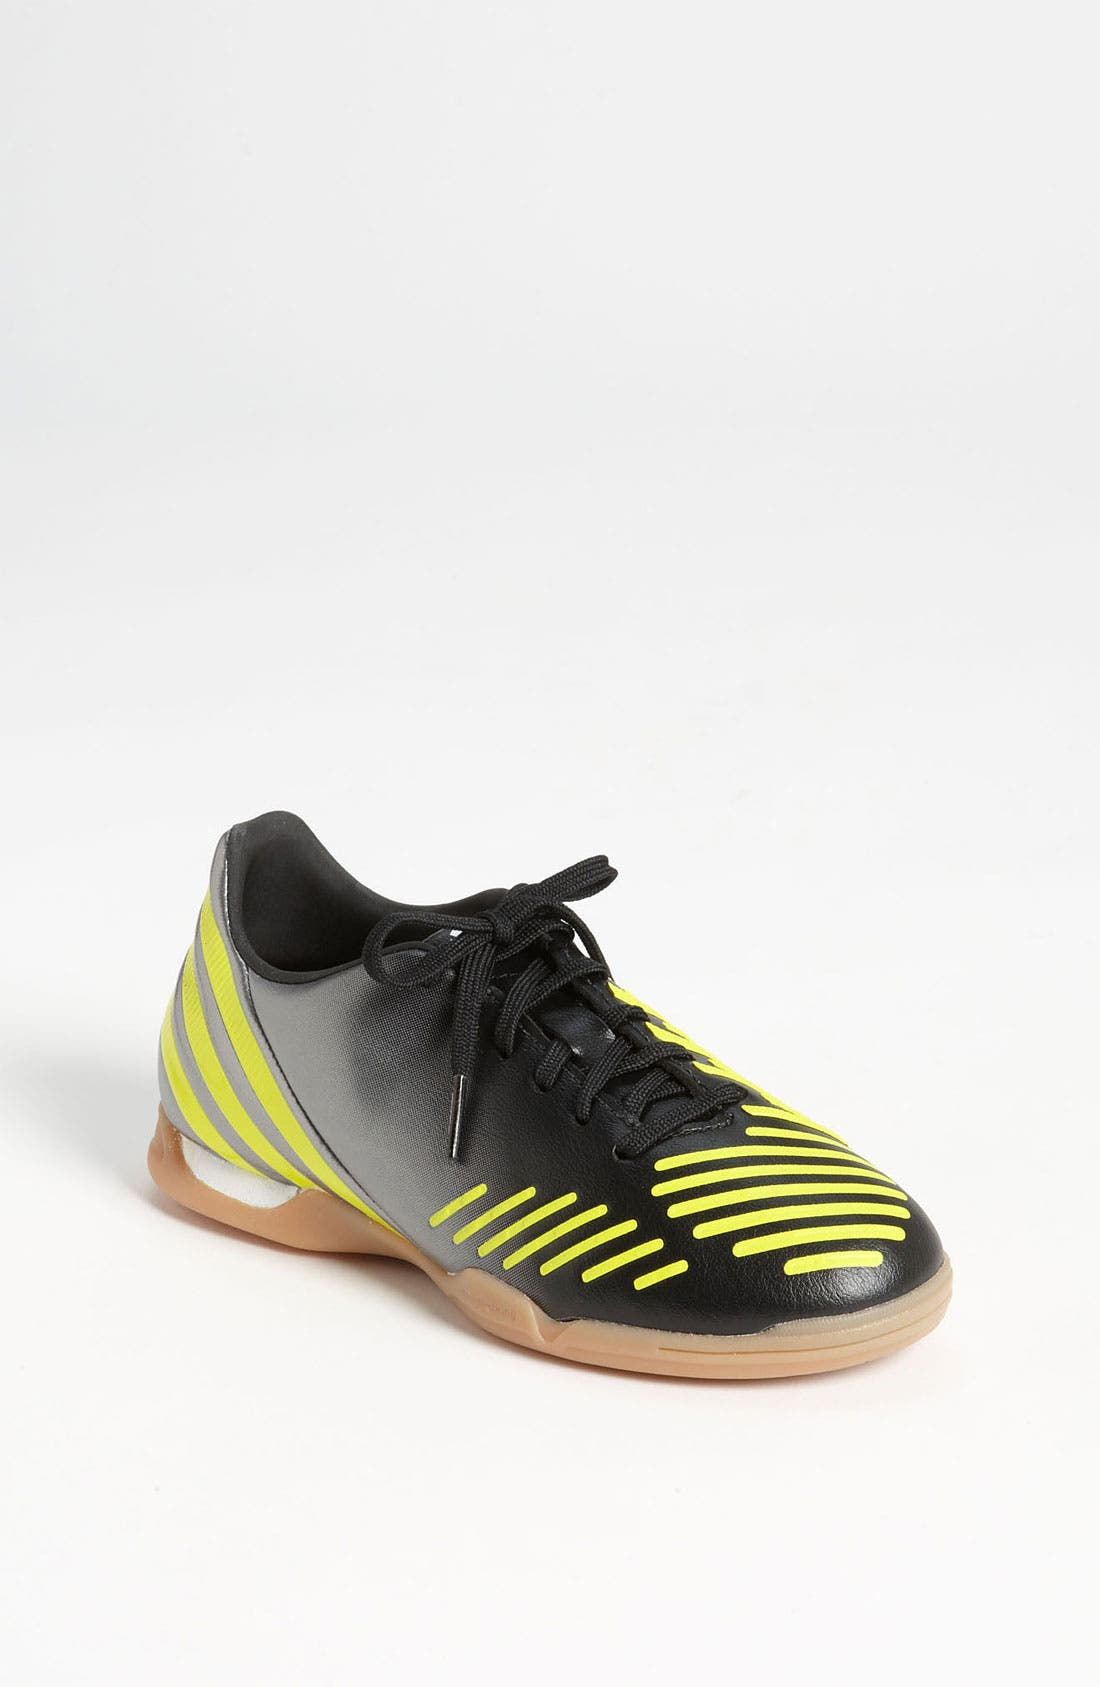 Alternate Image 1 Selected - adidas 'Predator Absolado LZ IN J' Soccer Shoe (Toddler, Little Kid & Big Kid)